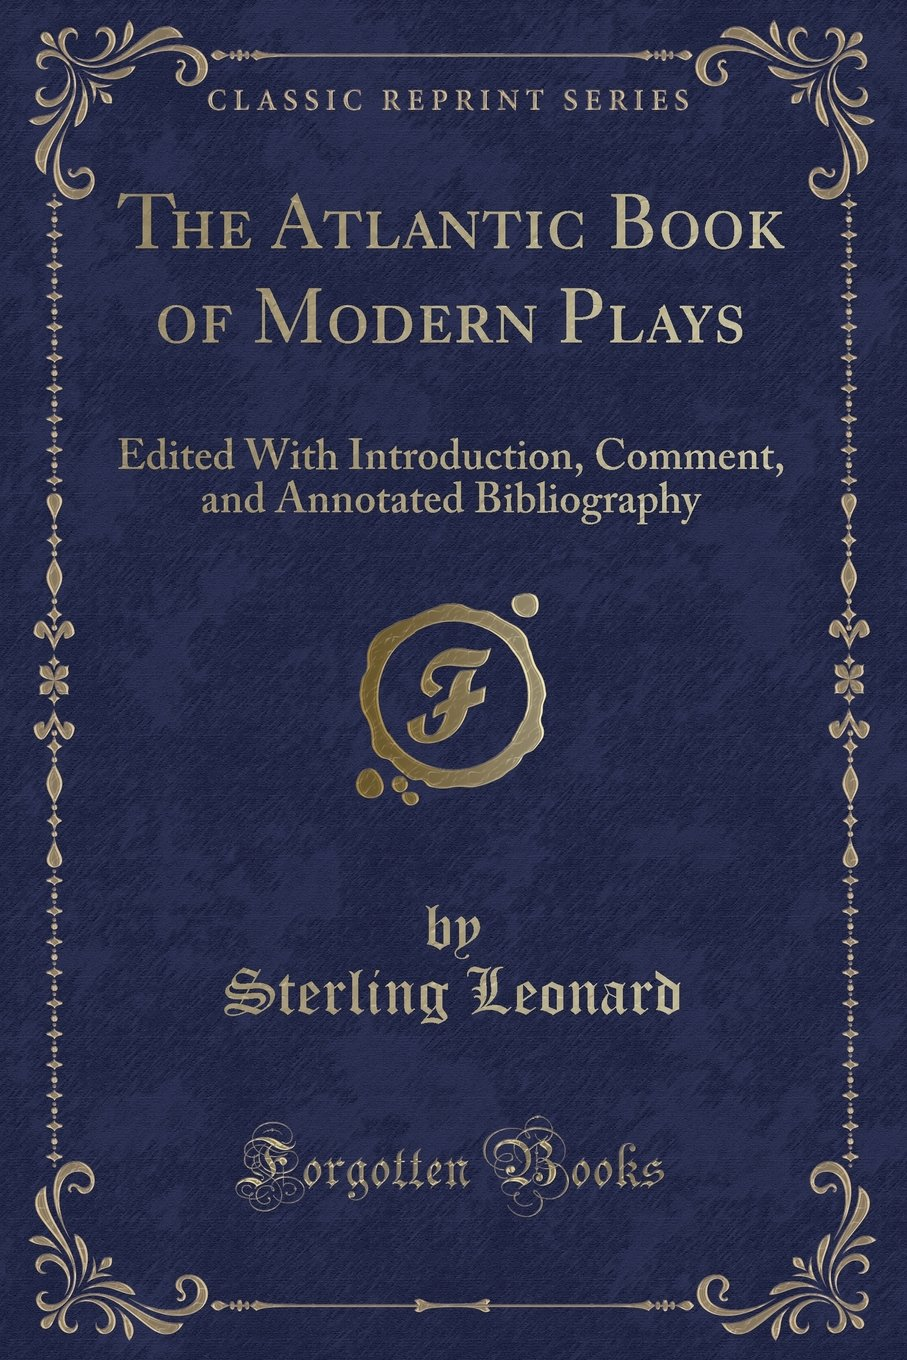 The Atlantic Book of Modern Plays: Edited With Introduction, Comment, and Annotated Bibliography (Classic Reprint) PDF ePub book